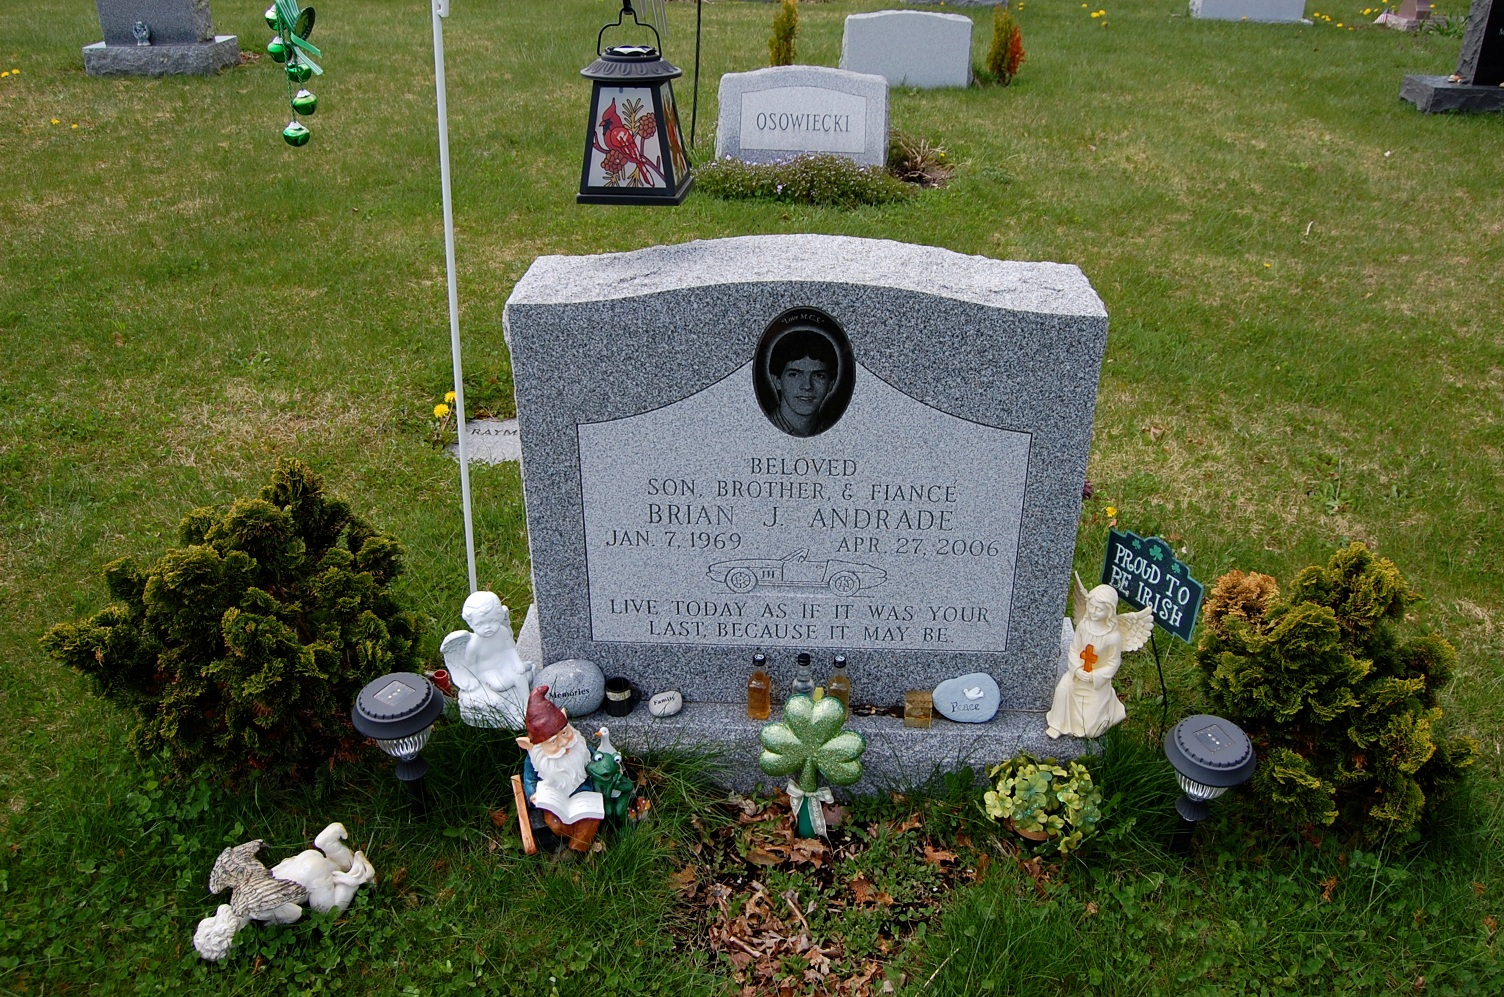 Interred Image: A6-266.jpg